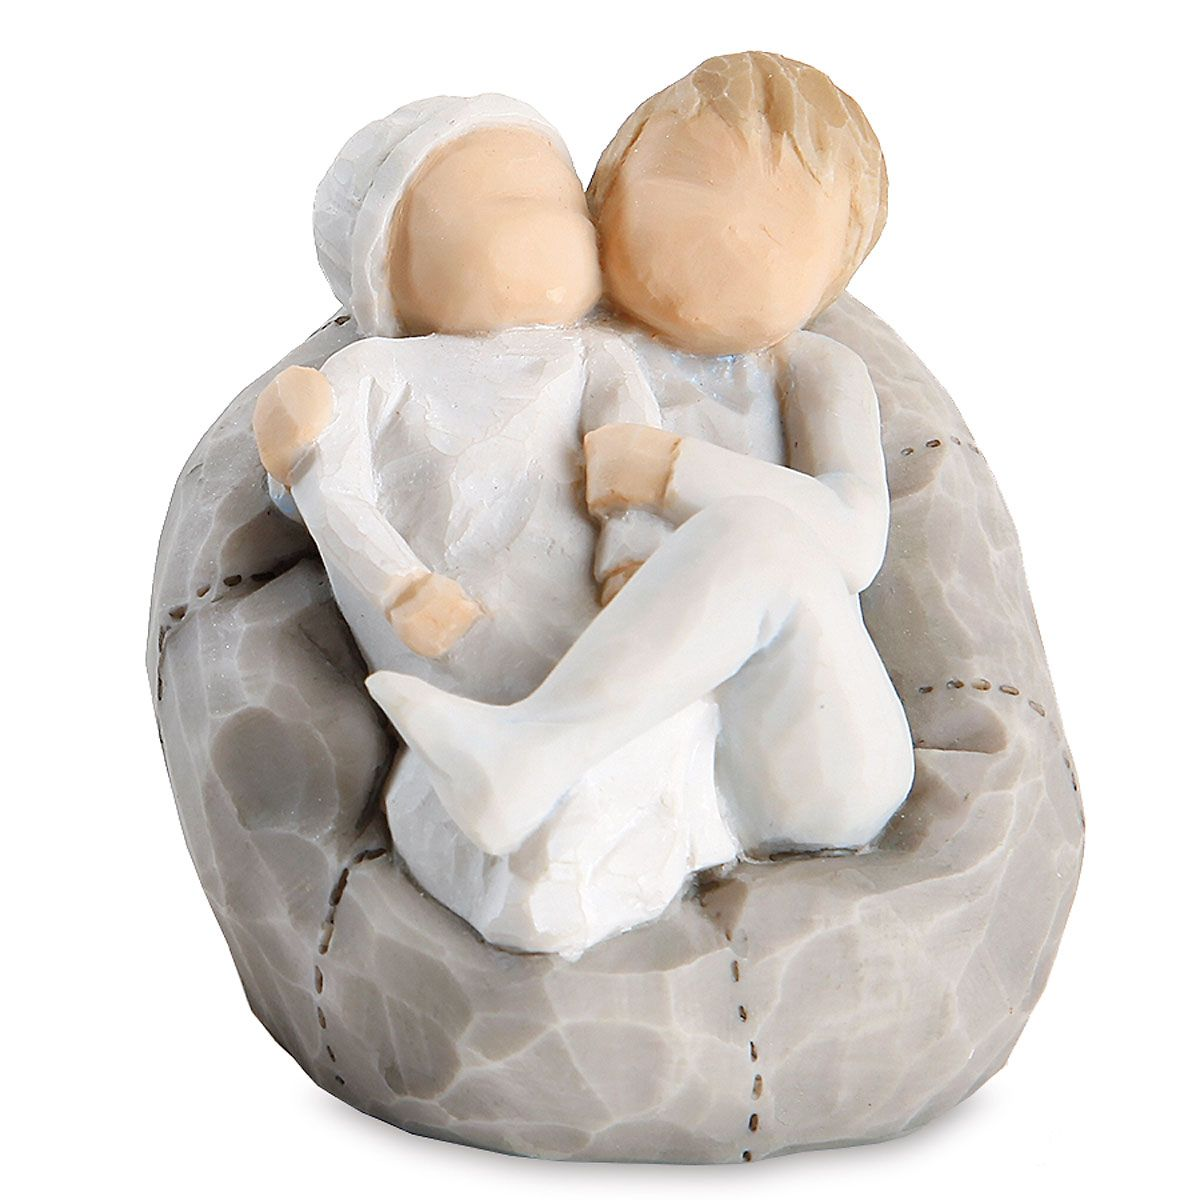 Sky Blue My Baby Figurine by Willow Tree®